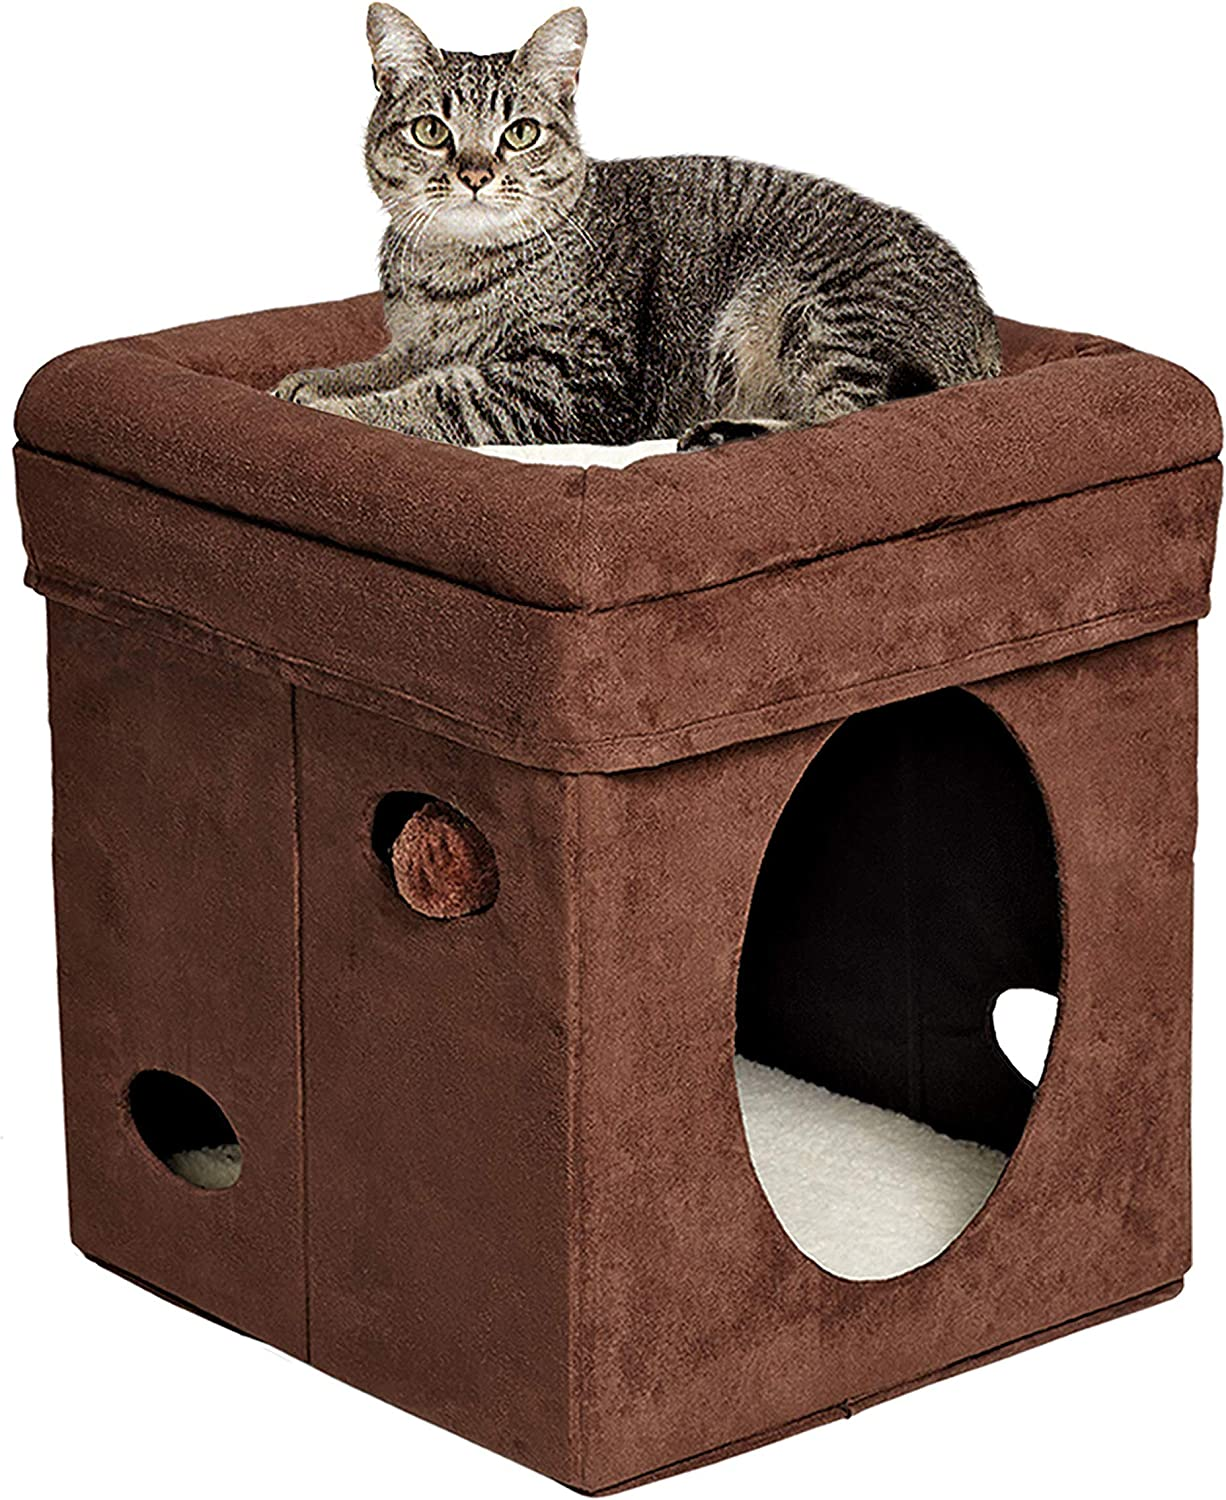 Buy Midwest Homes For Pets Faux Suede And Synthetic Sheepskin Curious Cat Cube Brown Online At Low Prices In India Amazon In